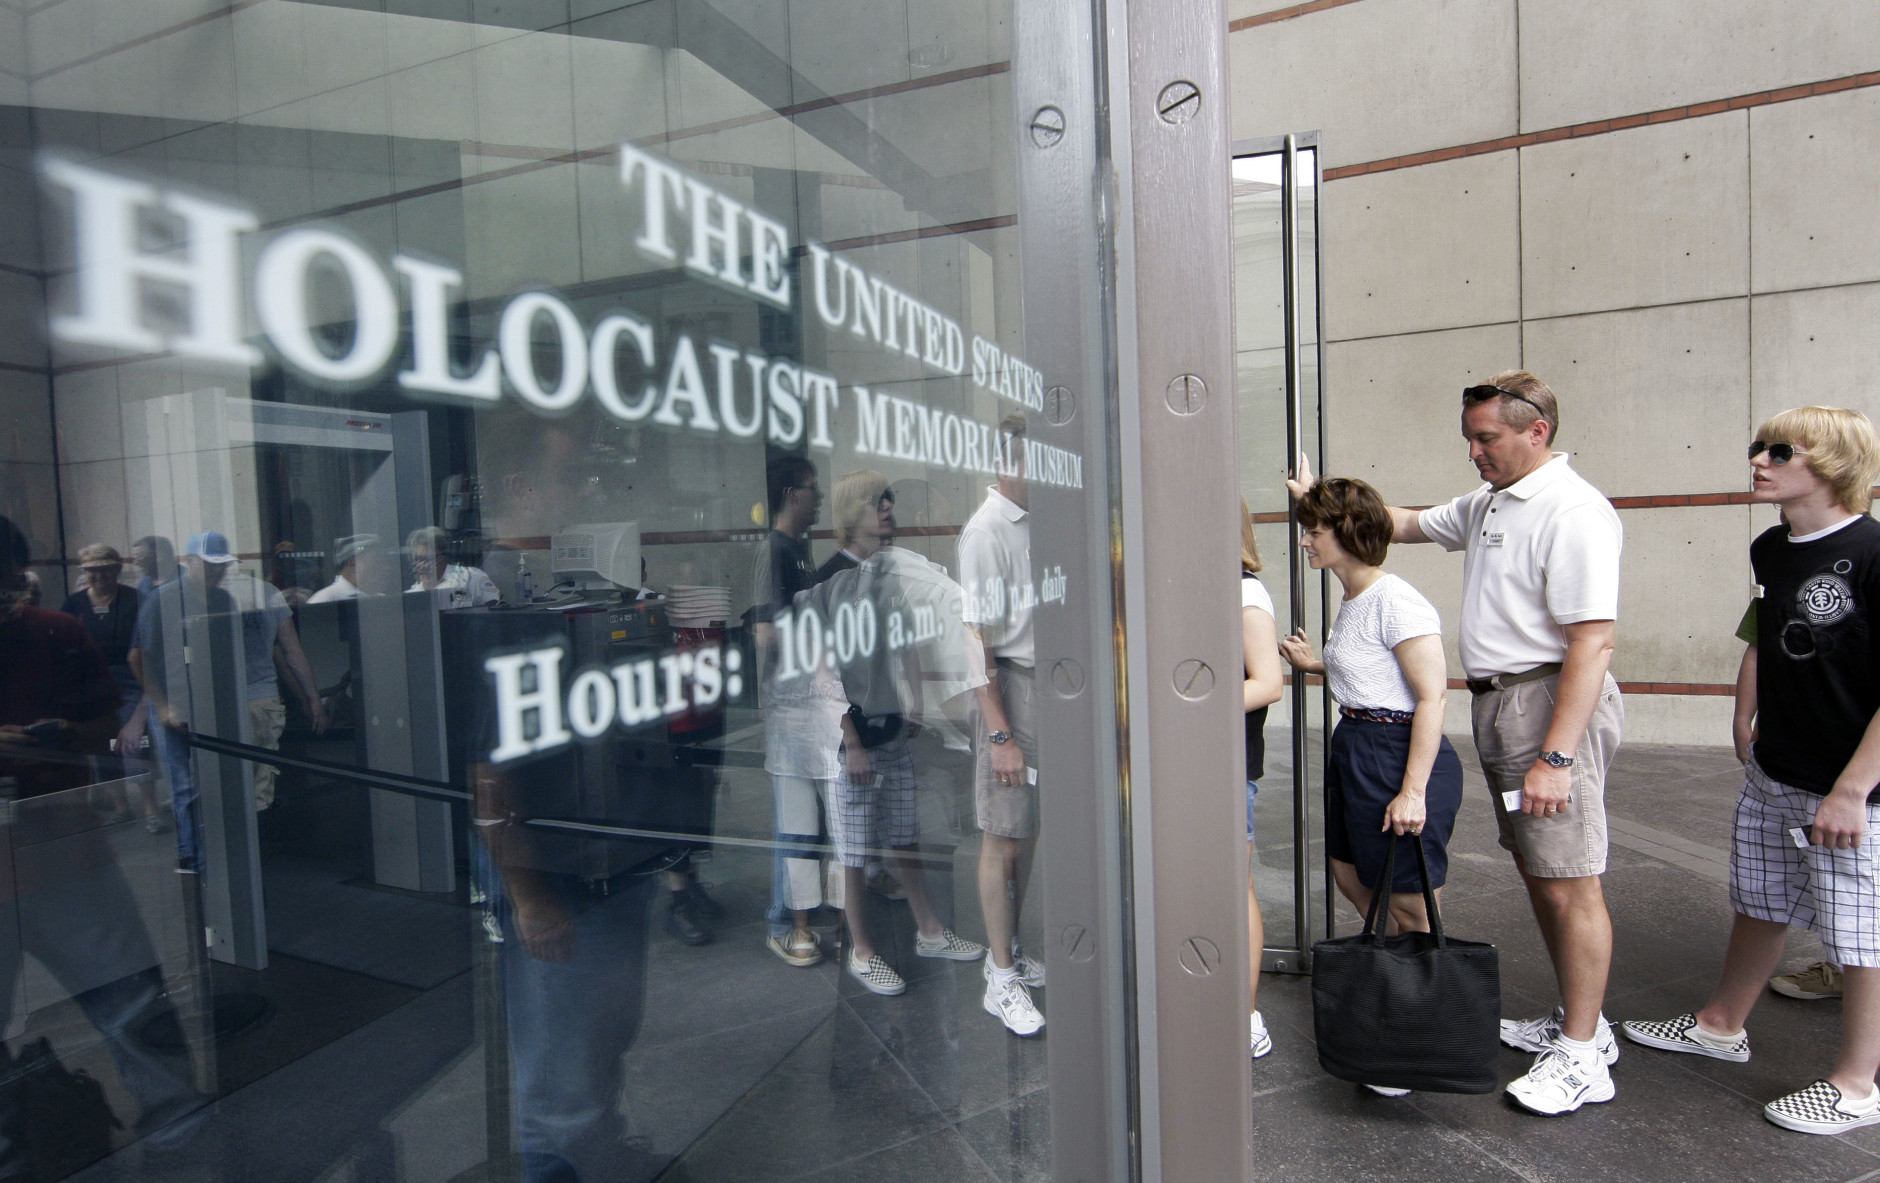 """FILE - In this June 12, 2009 file photo, people line to enter the U.S. Holocaust Memorial Museum in Washington.  The U.S. museum is requesting that smartphone users refrain from """"catching"""" Pokemon when they are inside the museum. Museum Communications Director Andrew Hollinger tells The Washington Post that officials are trying to reach game developers to get the museum removed as a prominent location in the popular new Pokemon Go smartphone game.  (AP Photo/Alex Brandon, File)"""